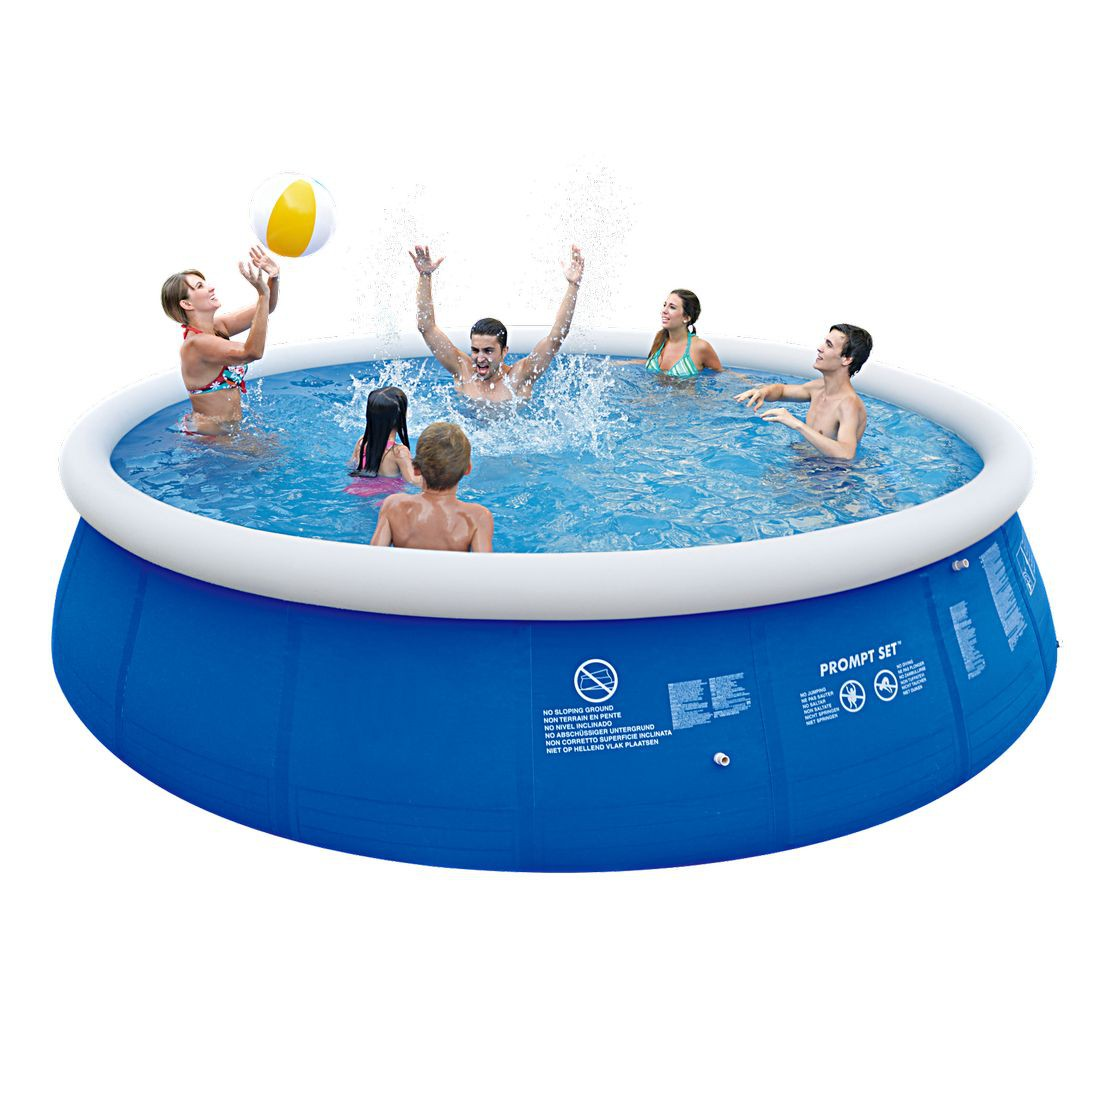 Jilong marin blue 540 set quick up pool set 540x122cm for Quick up pool oval